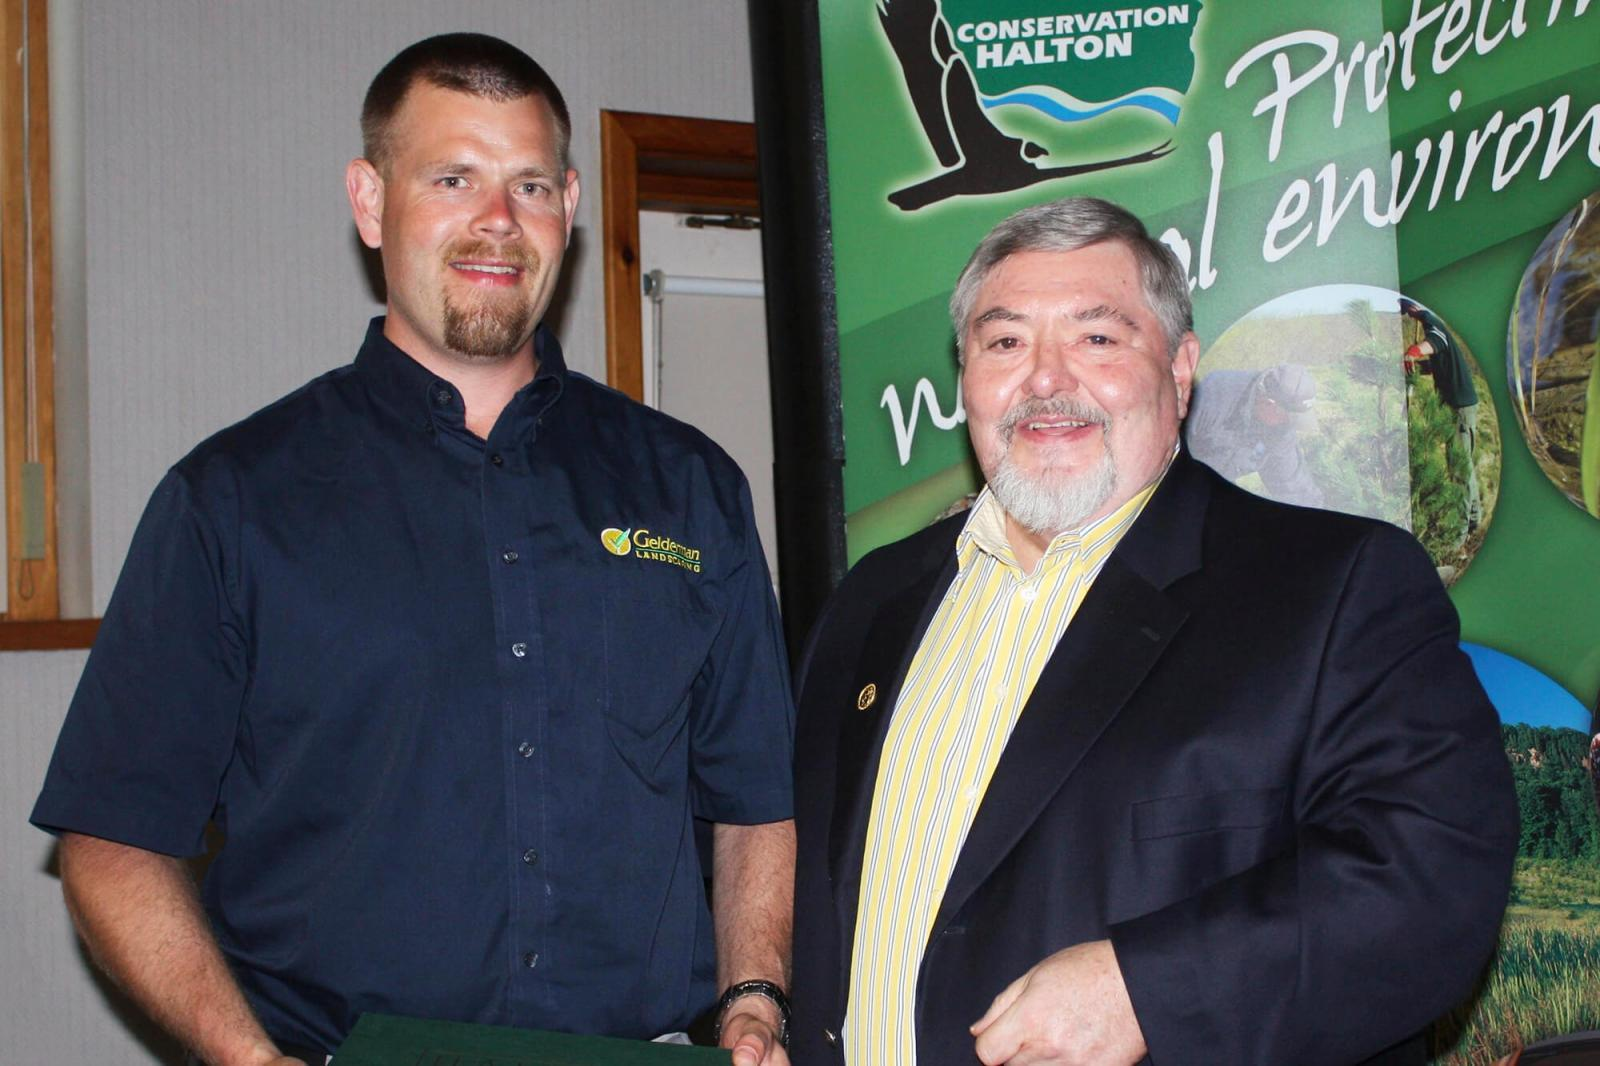 LO member wins conservation award